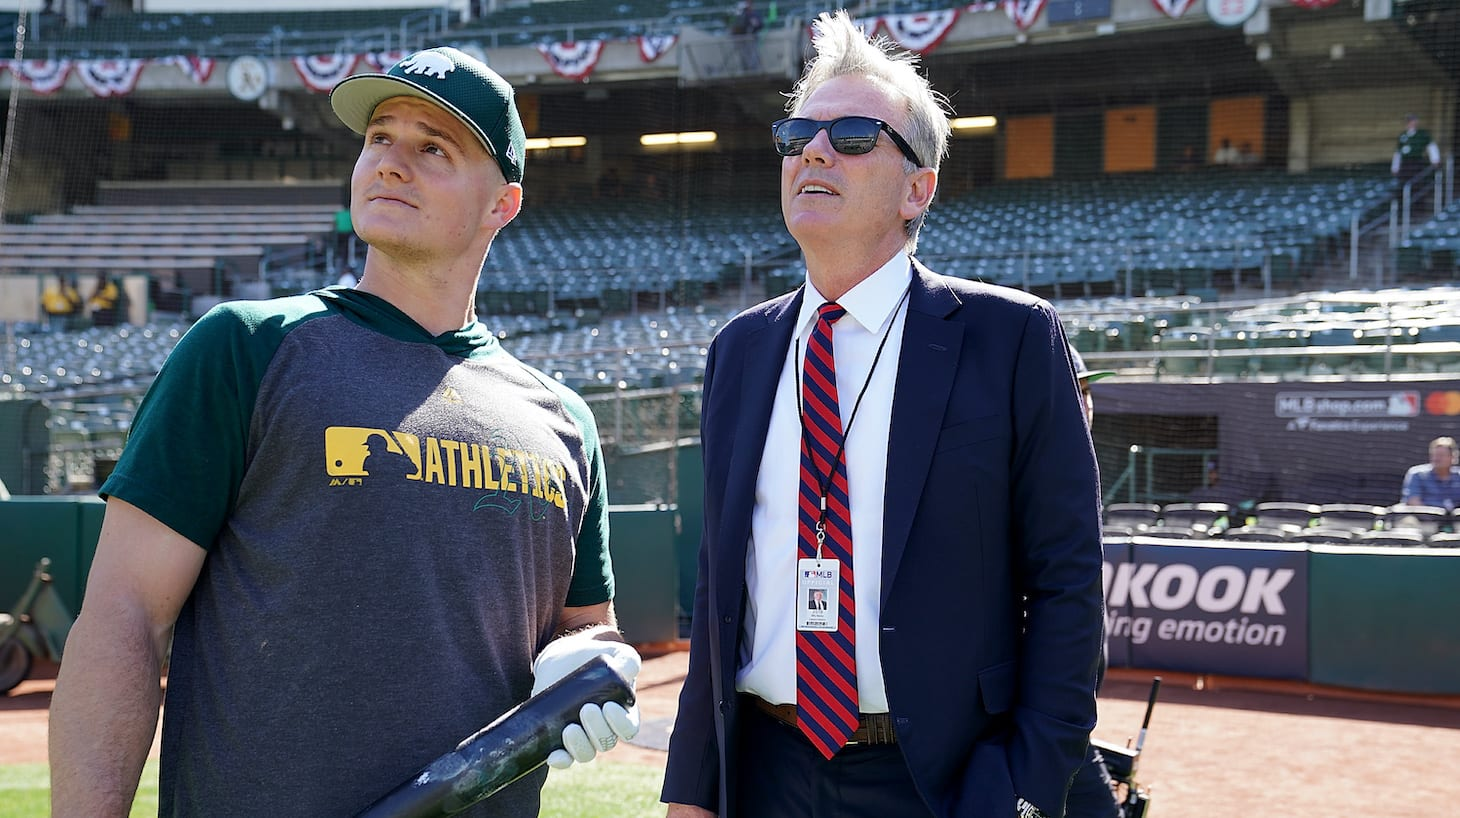 Who is the vice president of the Oakland baseball team?